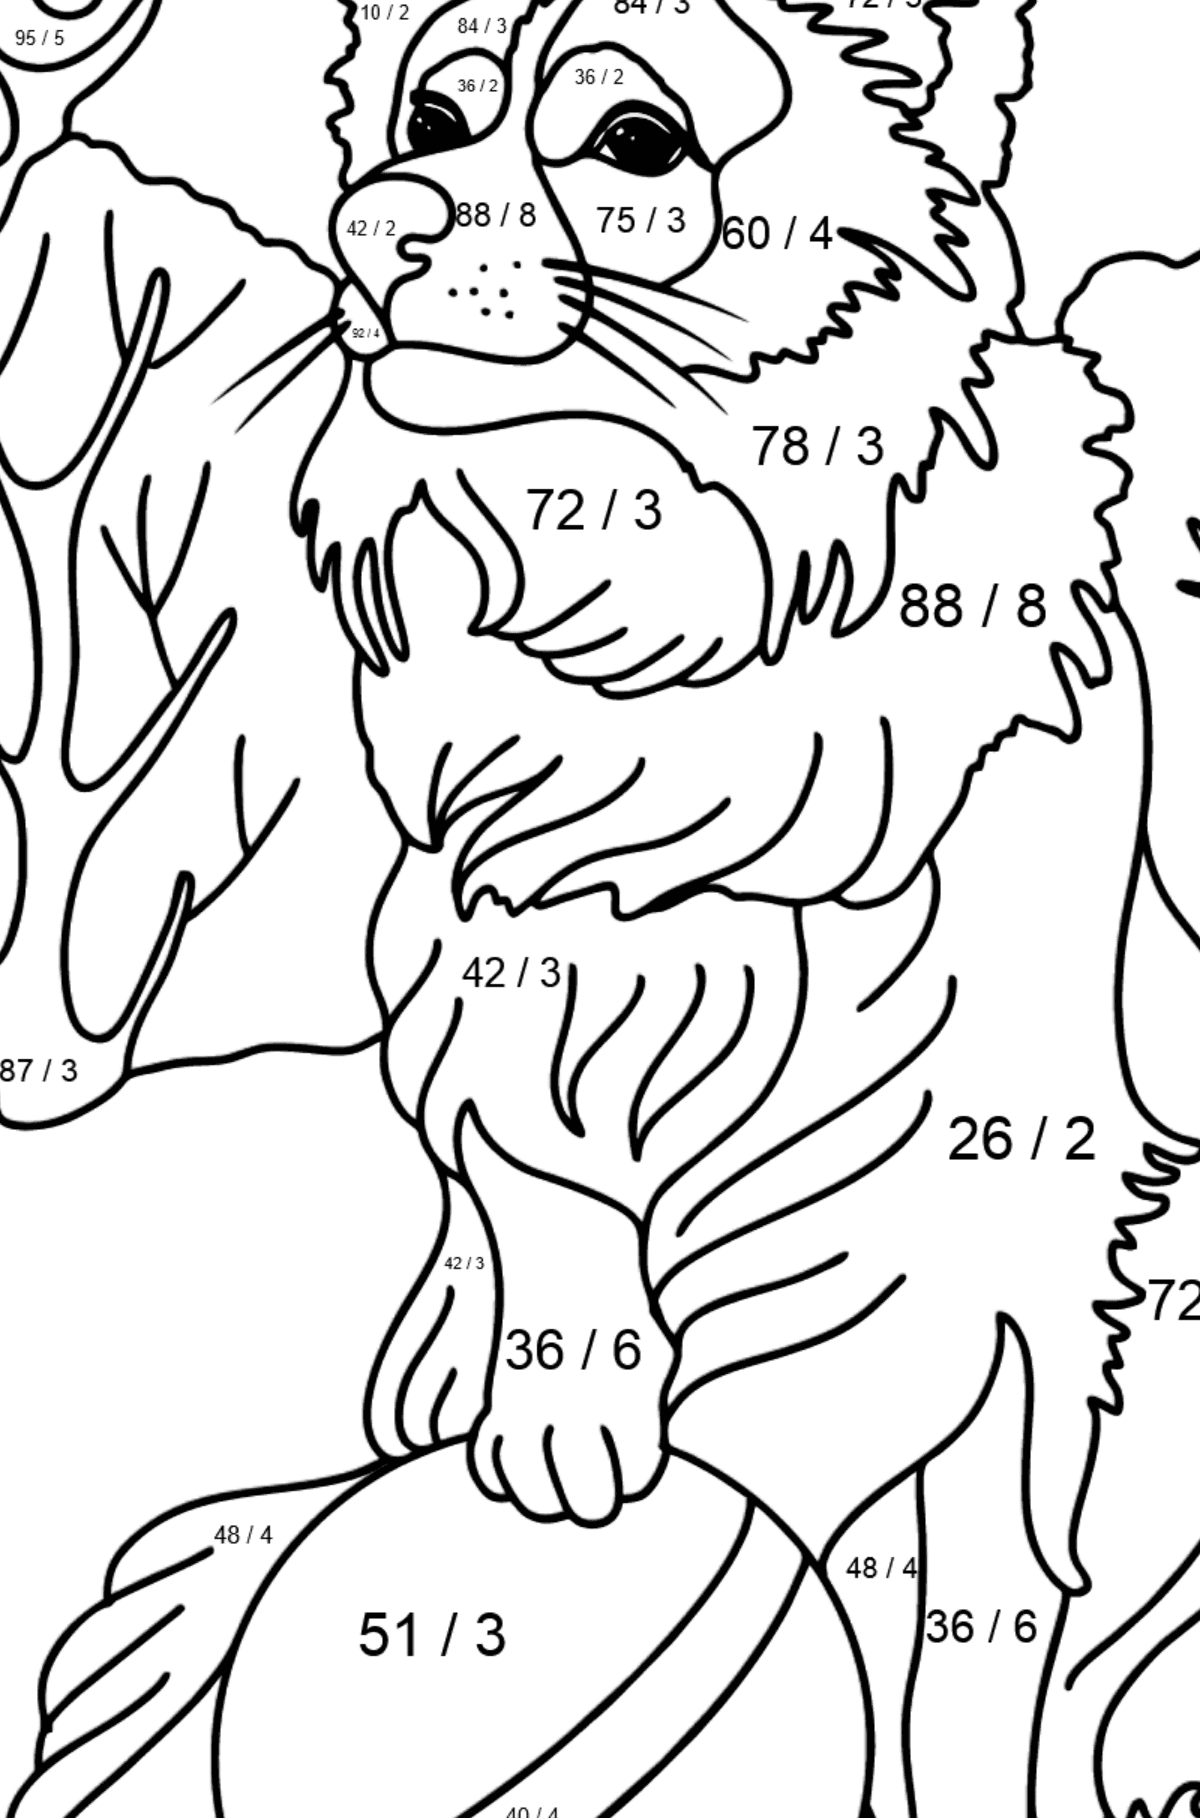 Collie coloring page - Math Coloring - Division for Kids